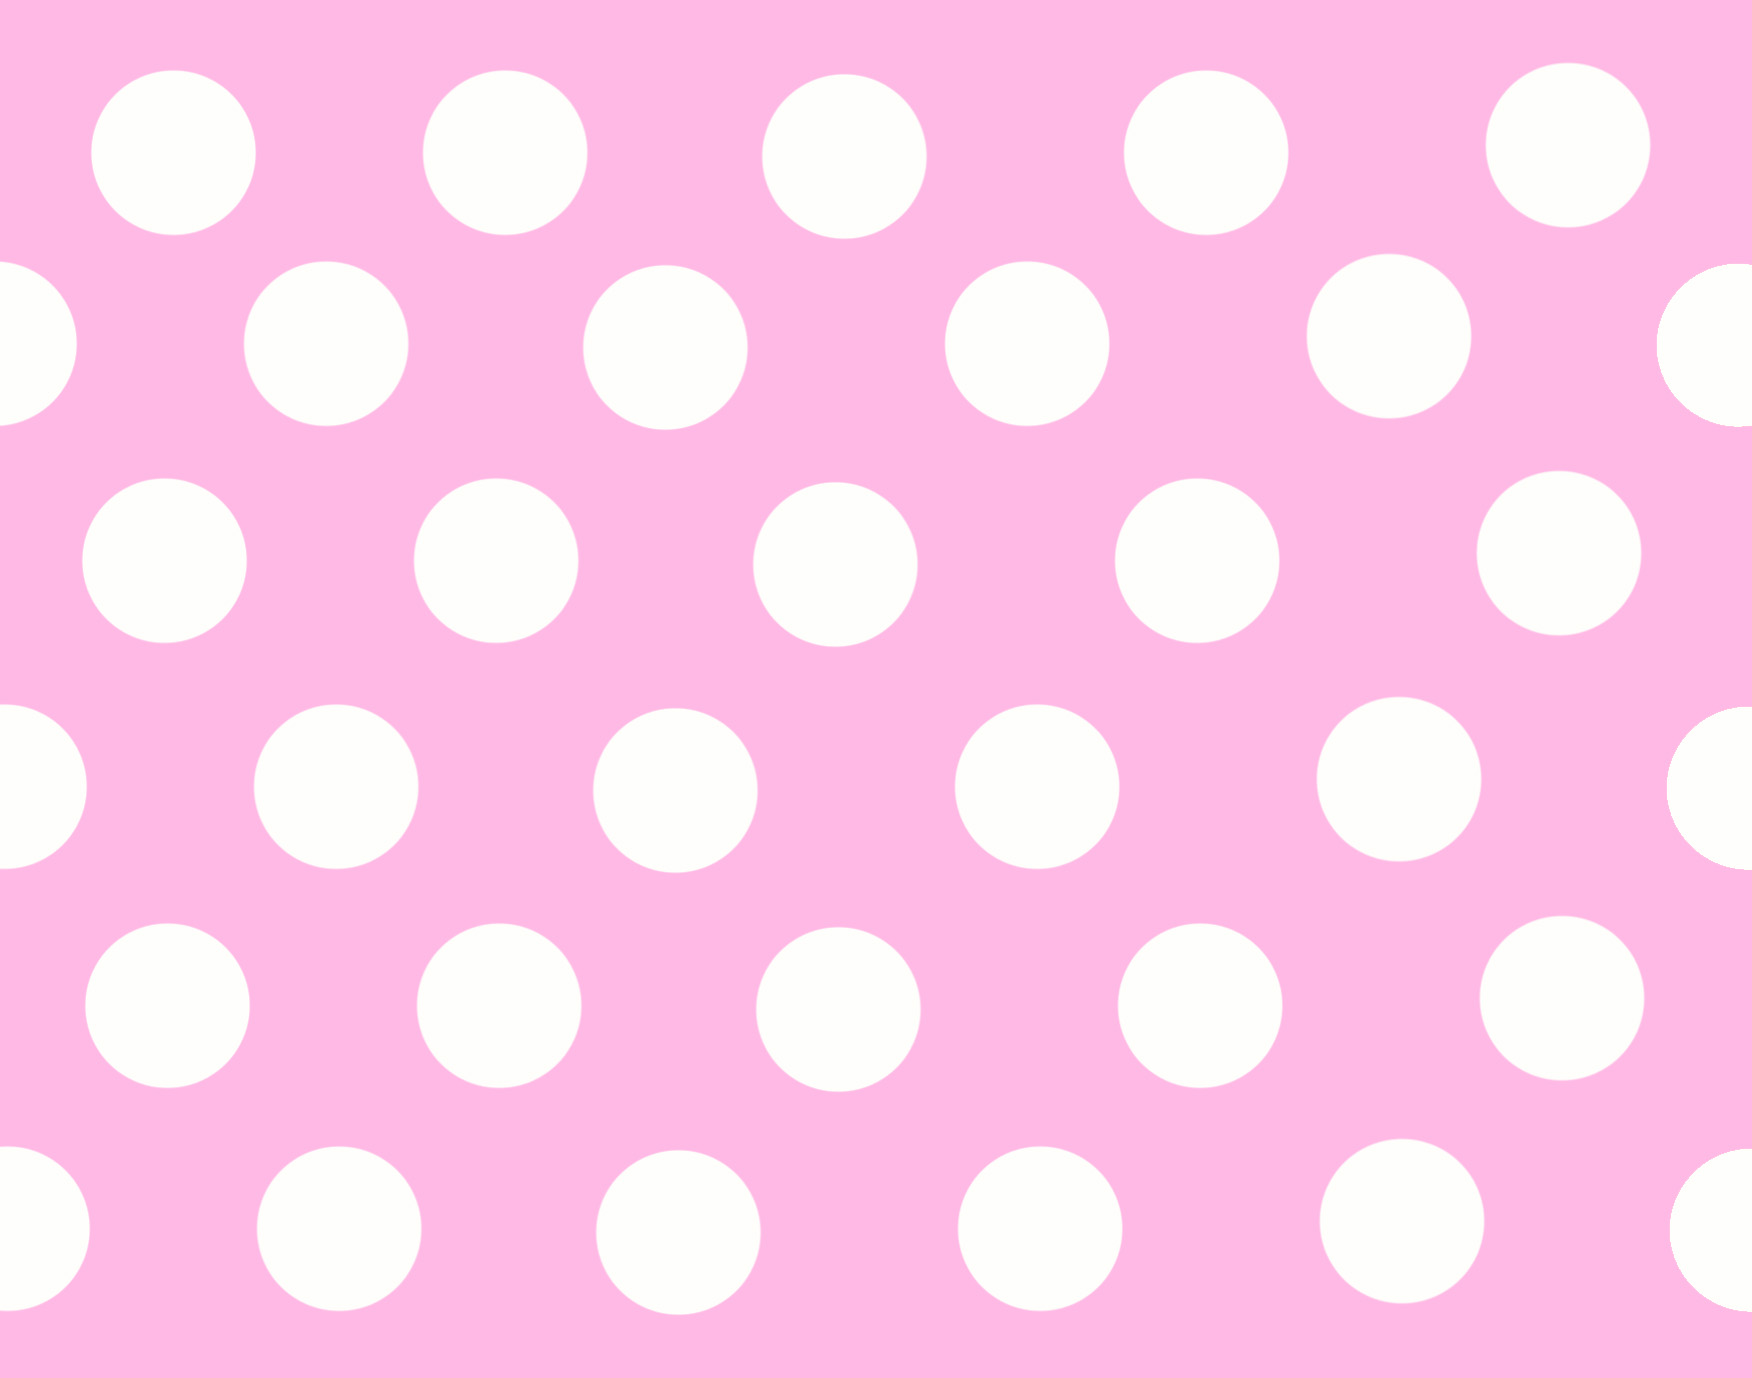 Pics photos pink polka dot s wallpaper - Hd Backgrounds For Pc Mobile